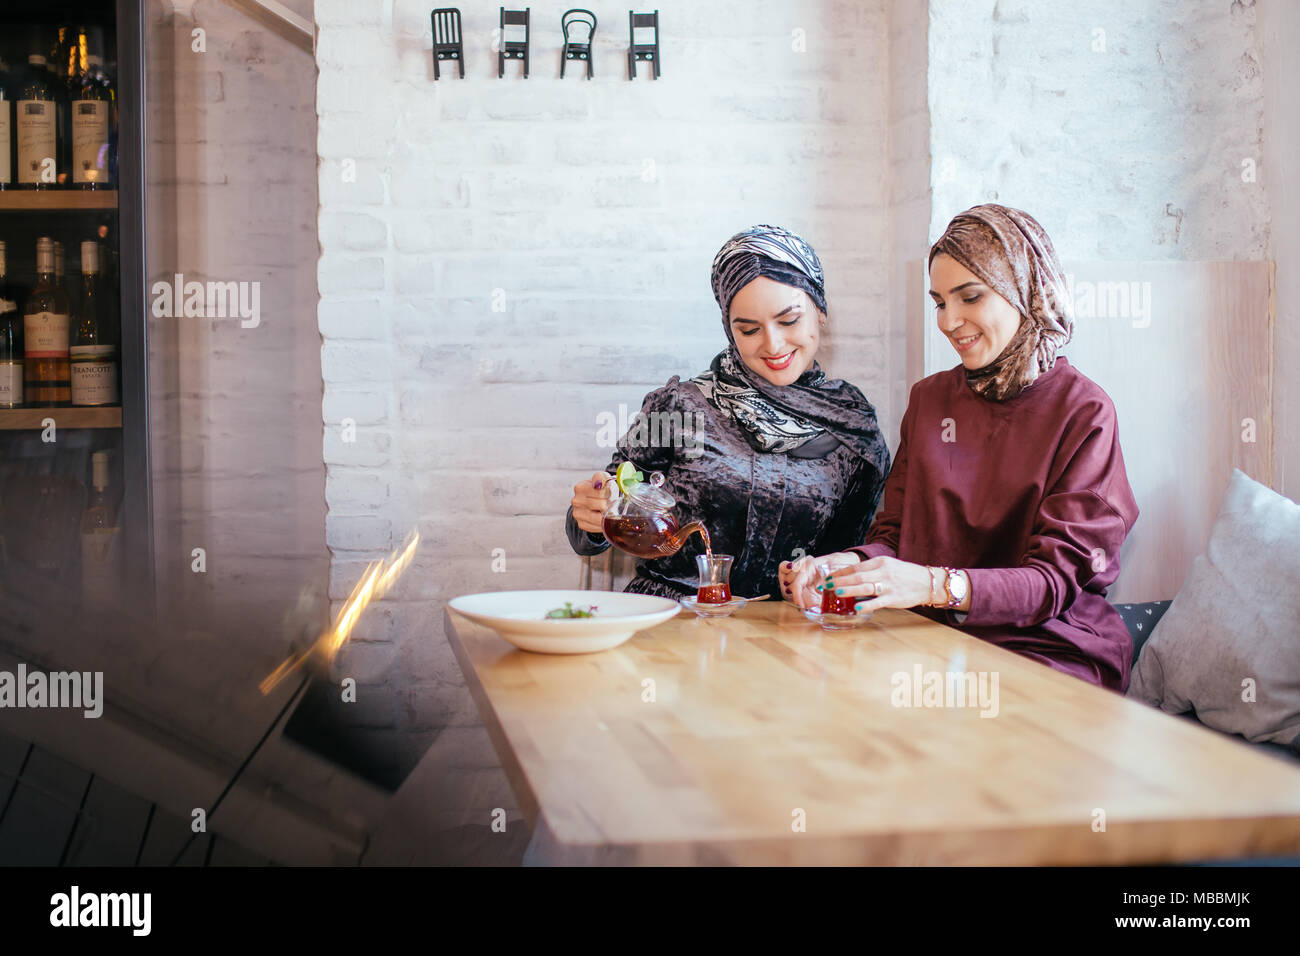 Deux musulmans caucasiens woman drinking tea in cafe Photo Stock